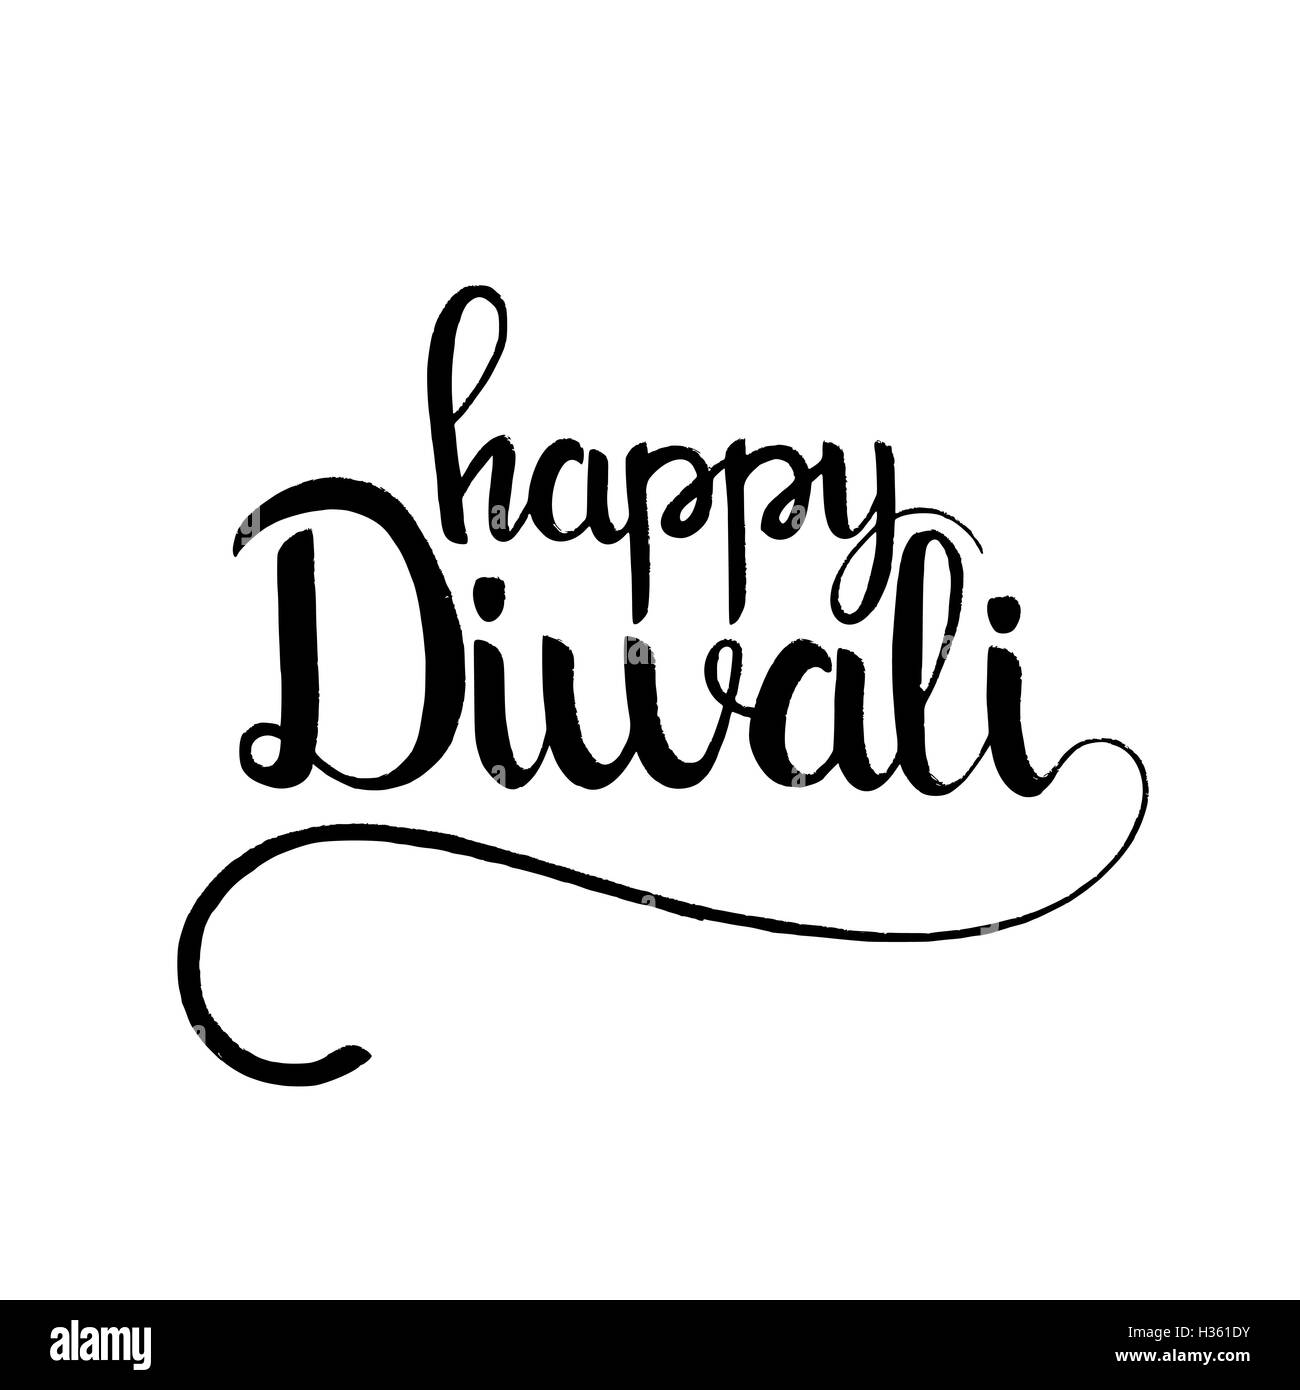 Happy diwali lettering modern vector hand drawn calligraphy modern vector hand drawn calligraphy isolated on white background for your greeting card design kristyandbryce Gallery